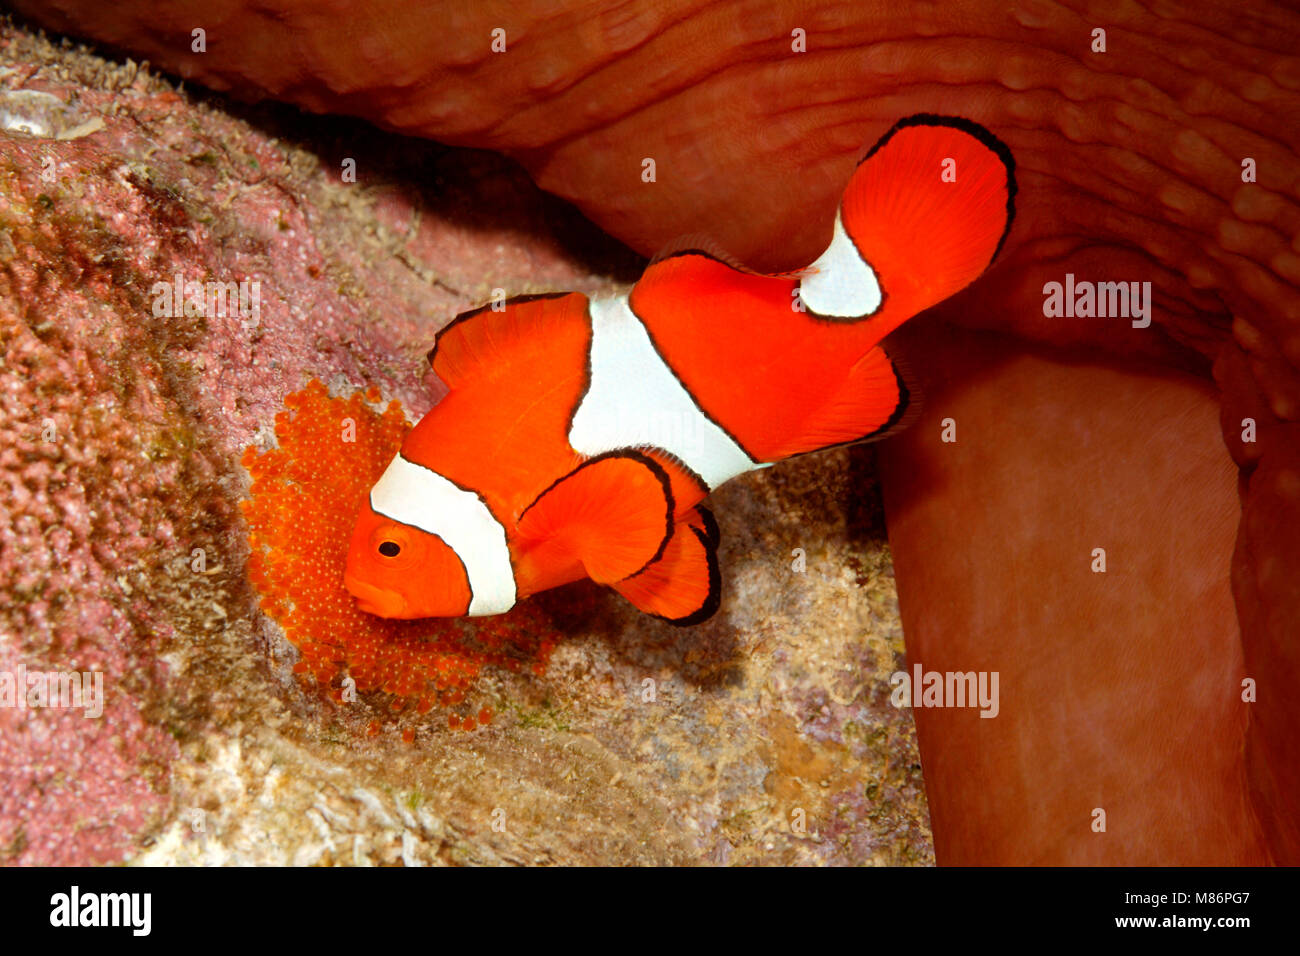 Clownfish With Eggs Stock Photos & Clownfish With Eggs Stock Images ...